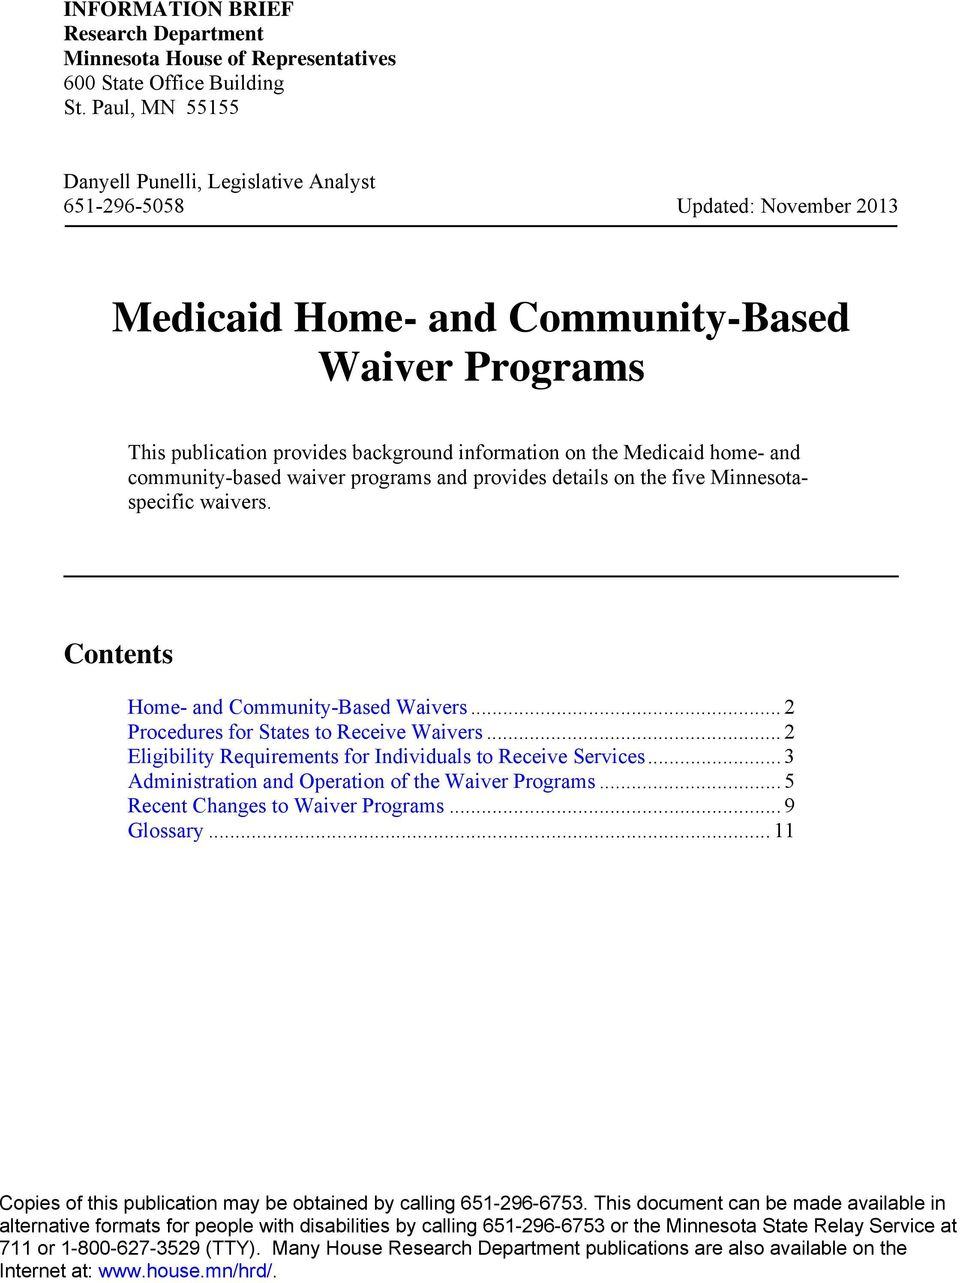 Medicaid home- and community-based waiver programs and provides details on the five Minnesotaspecific waivers. Contents Home- and Community-Based Waivers... 2 Procedures for States to Receive Waivers.